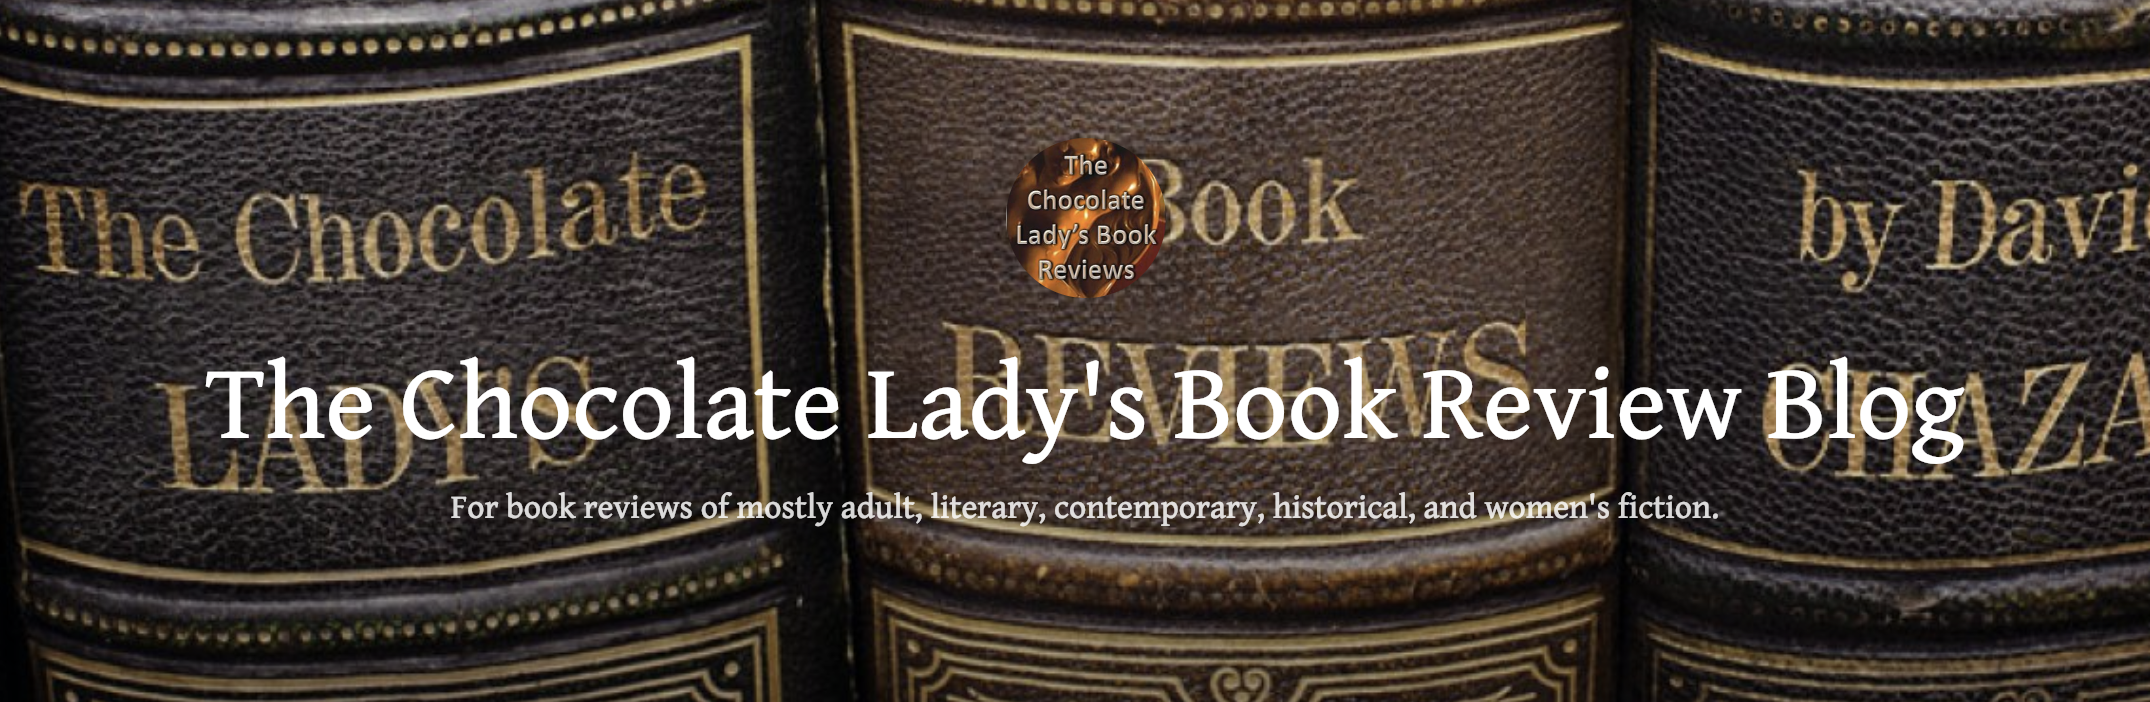 The Chocolate Lady's Book Review Blog